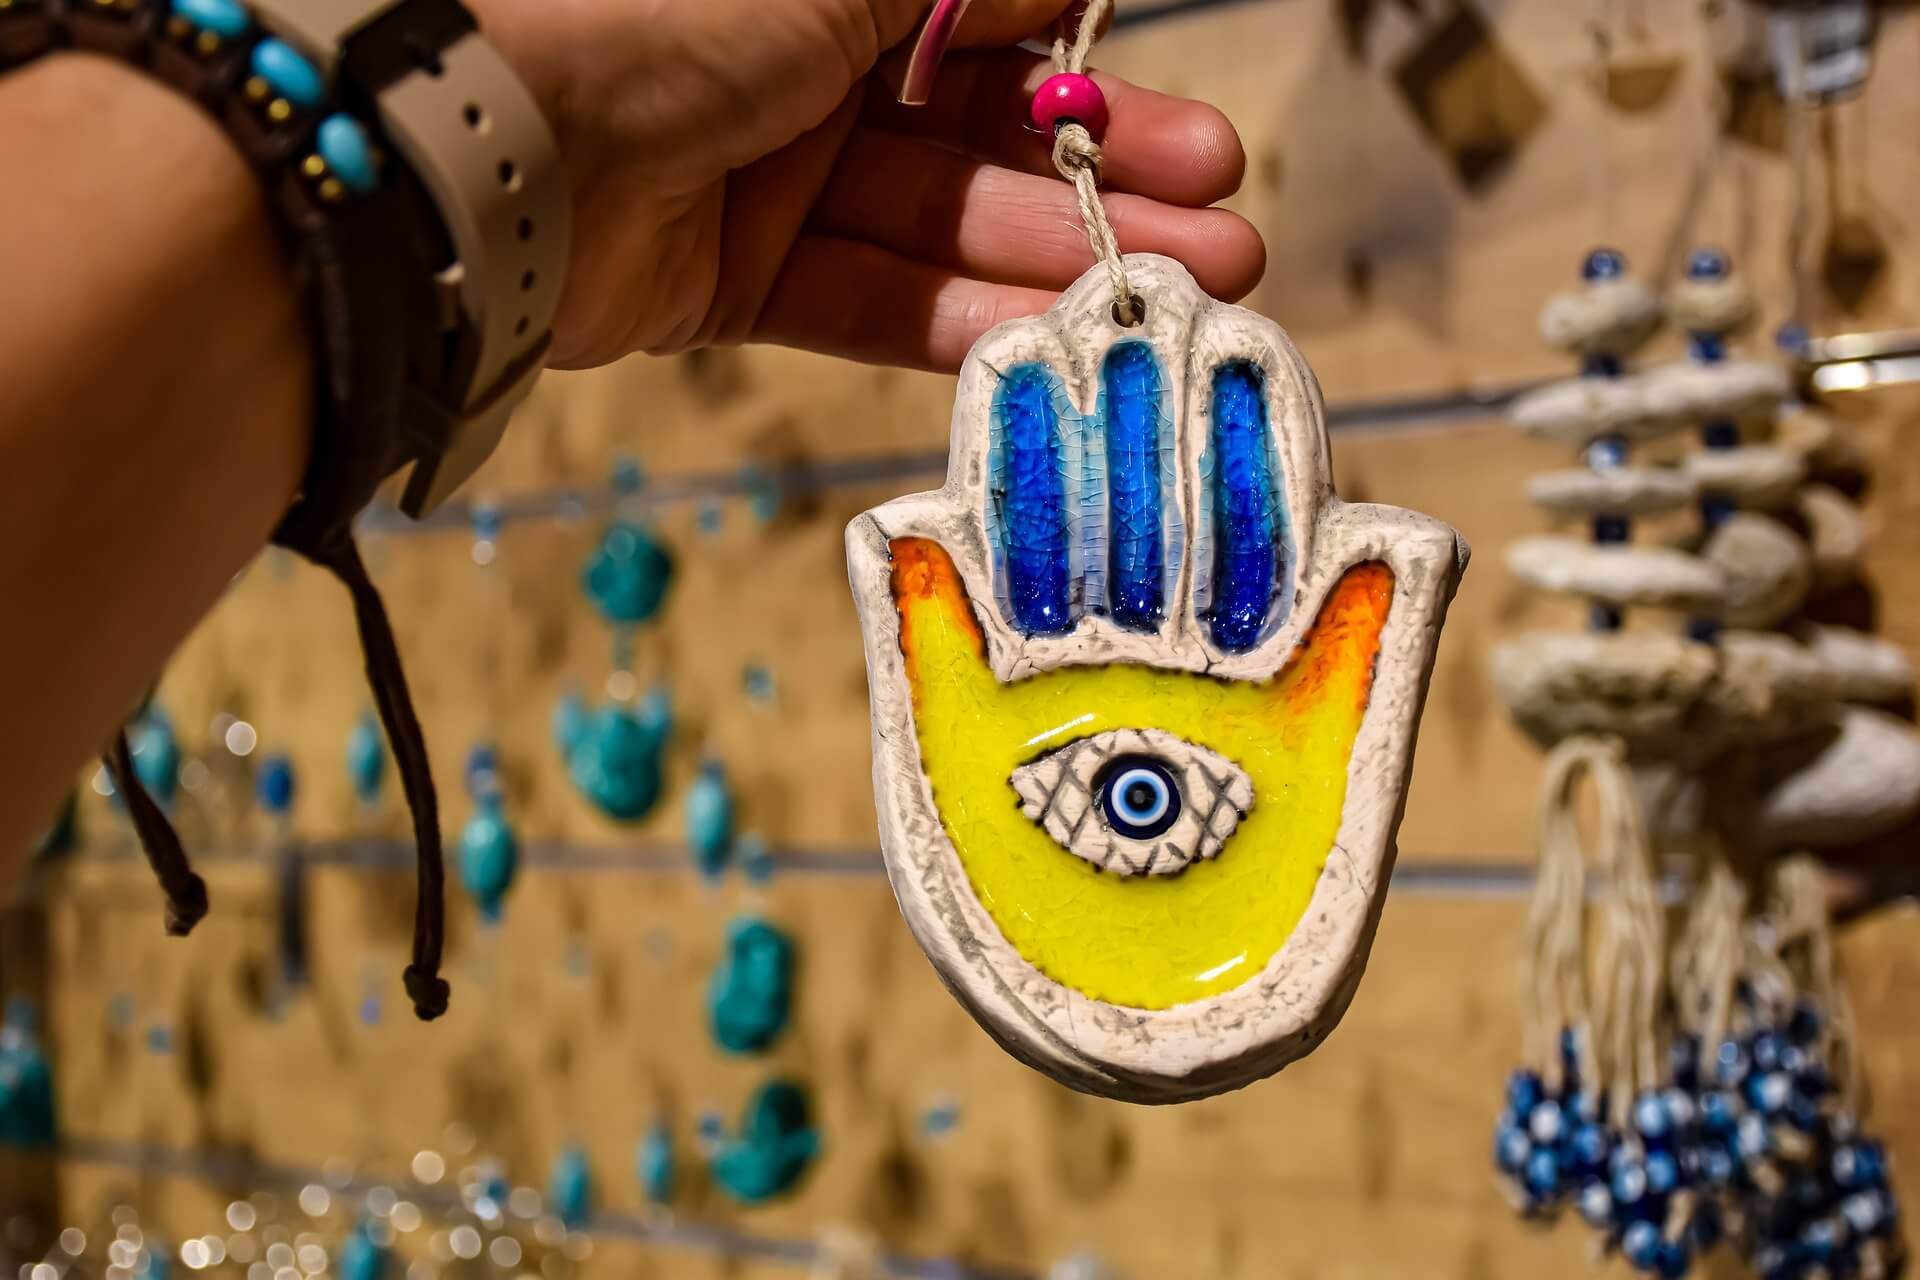 hamsa-hand-symbol-and-what-it-means-guide